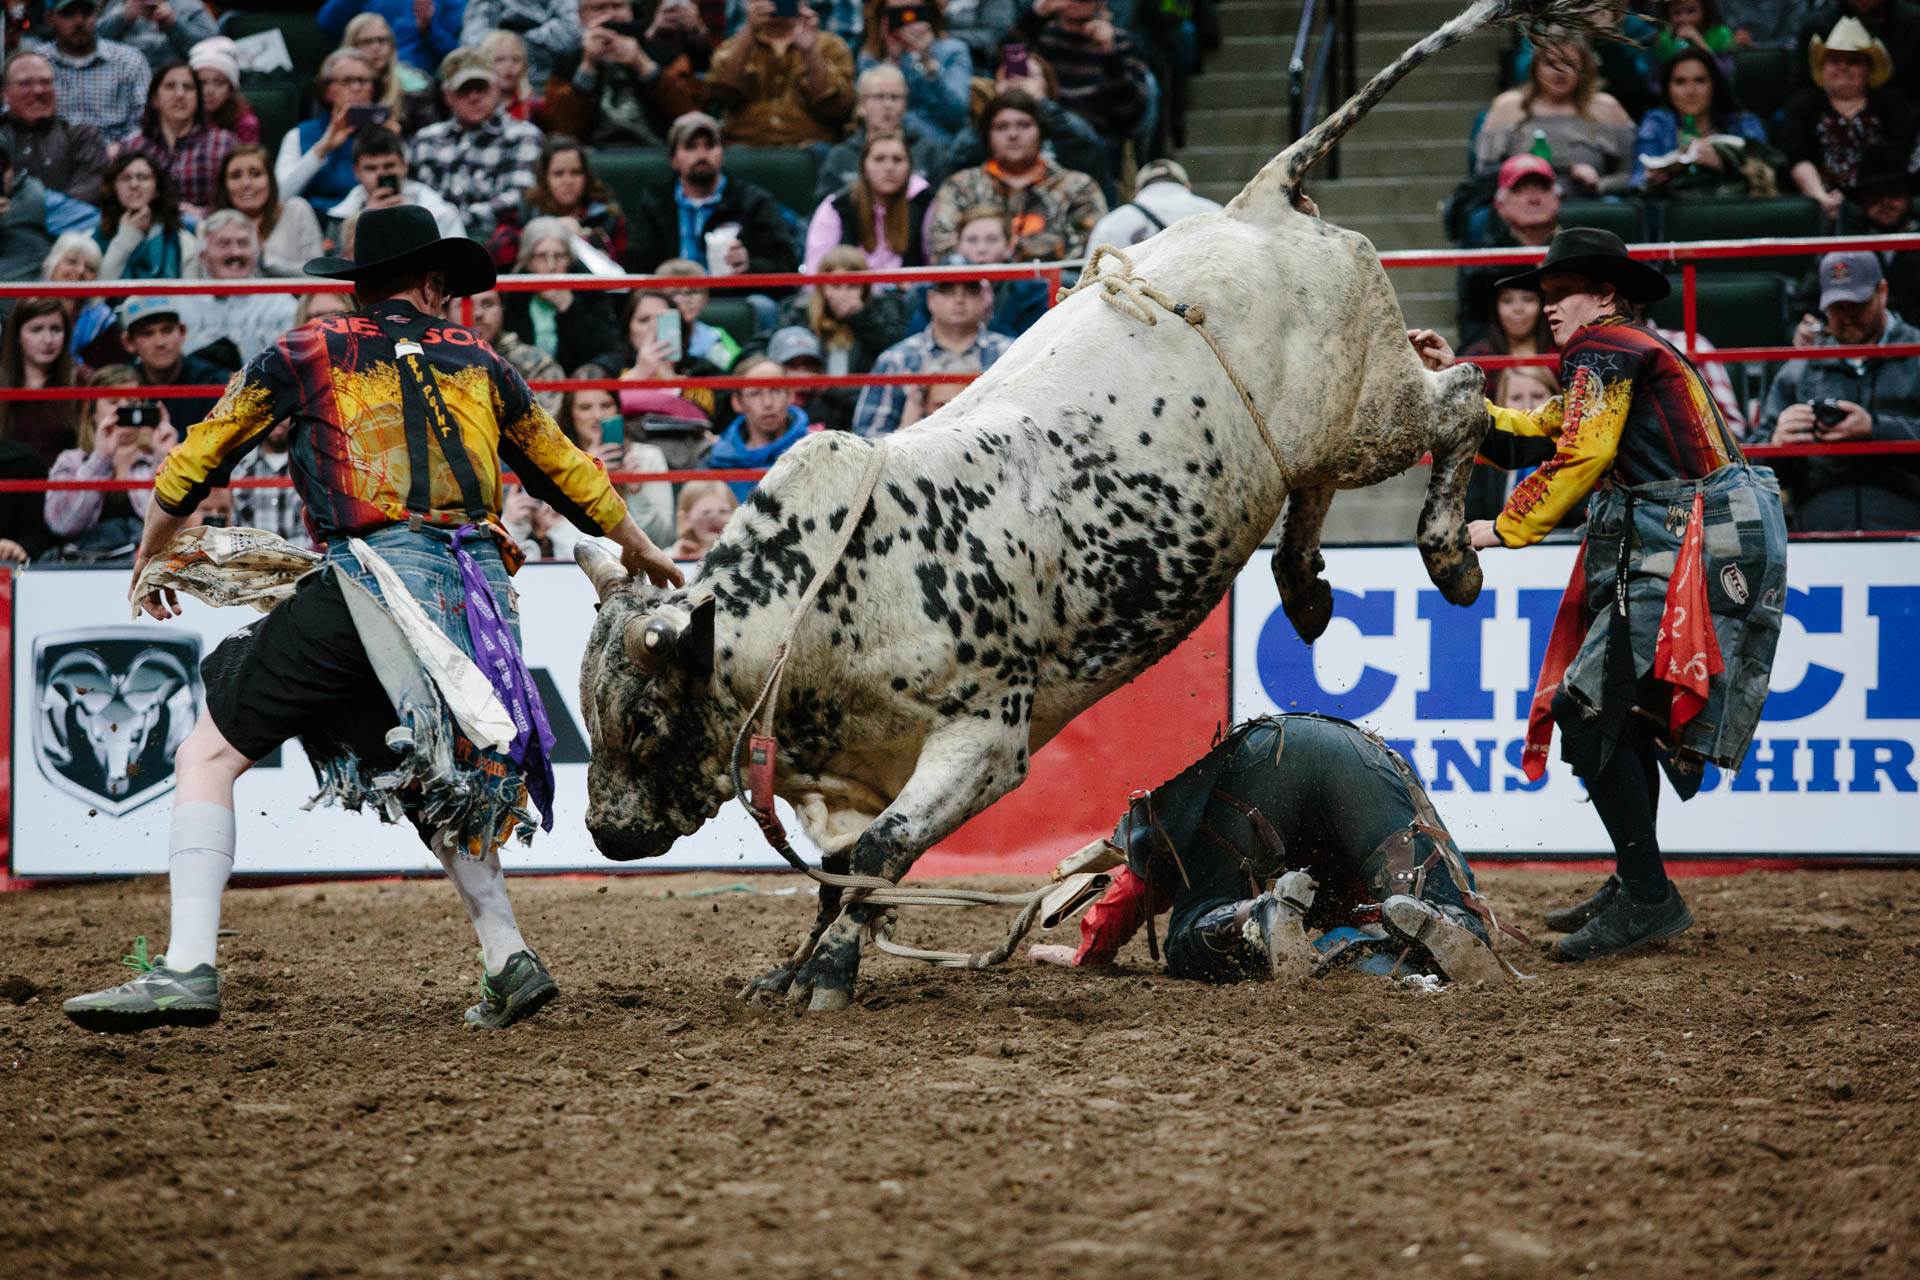 clinch-worlds-toughest-rodeo-9296